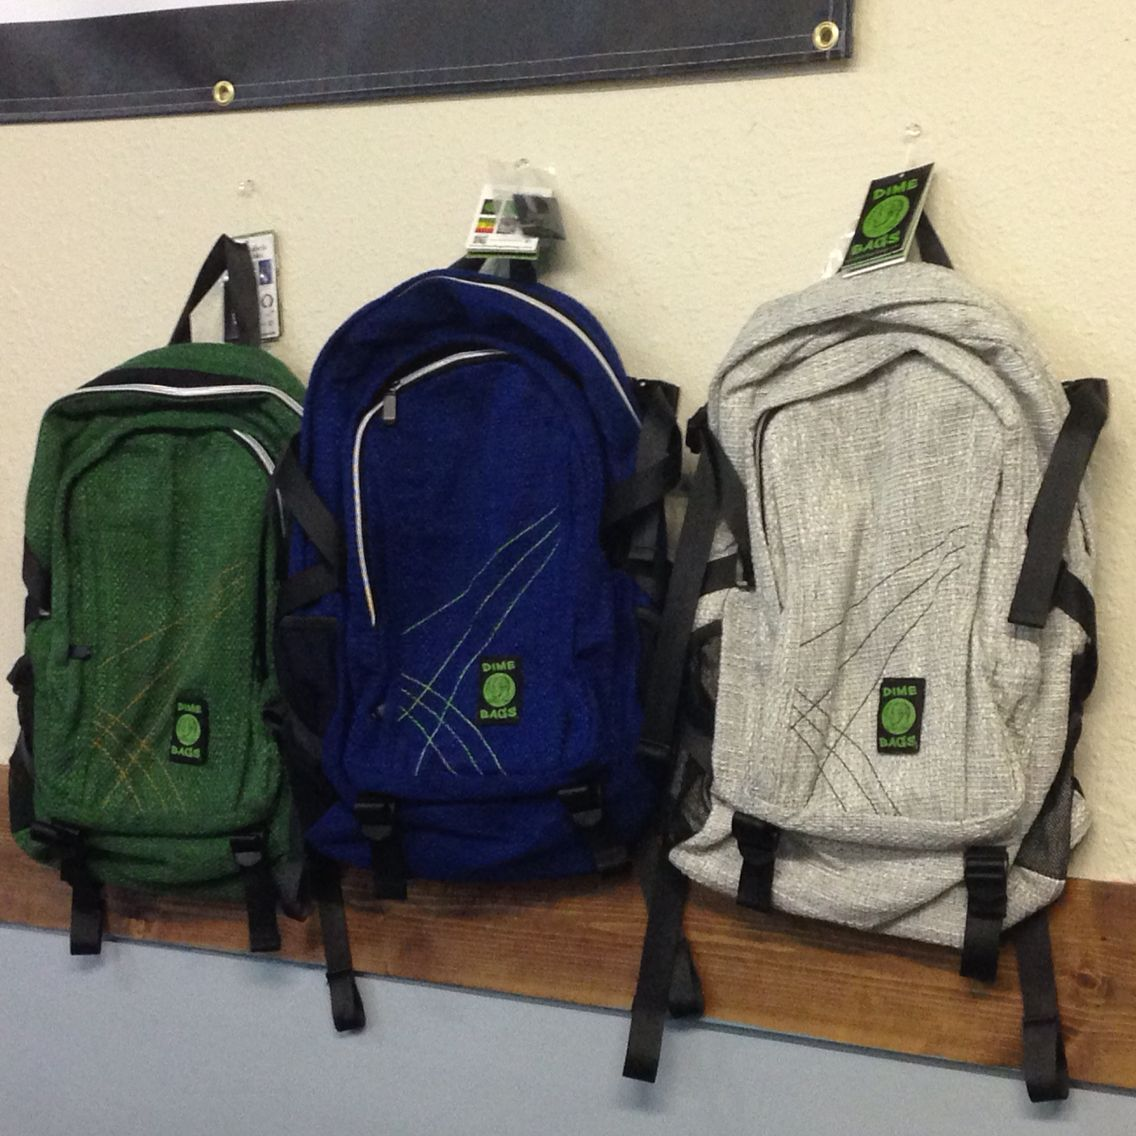 Dime Bags Storage Hemp Backpack Perfect For Adventuring And Carrying Your Glass Pieces